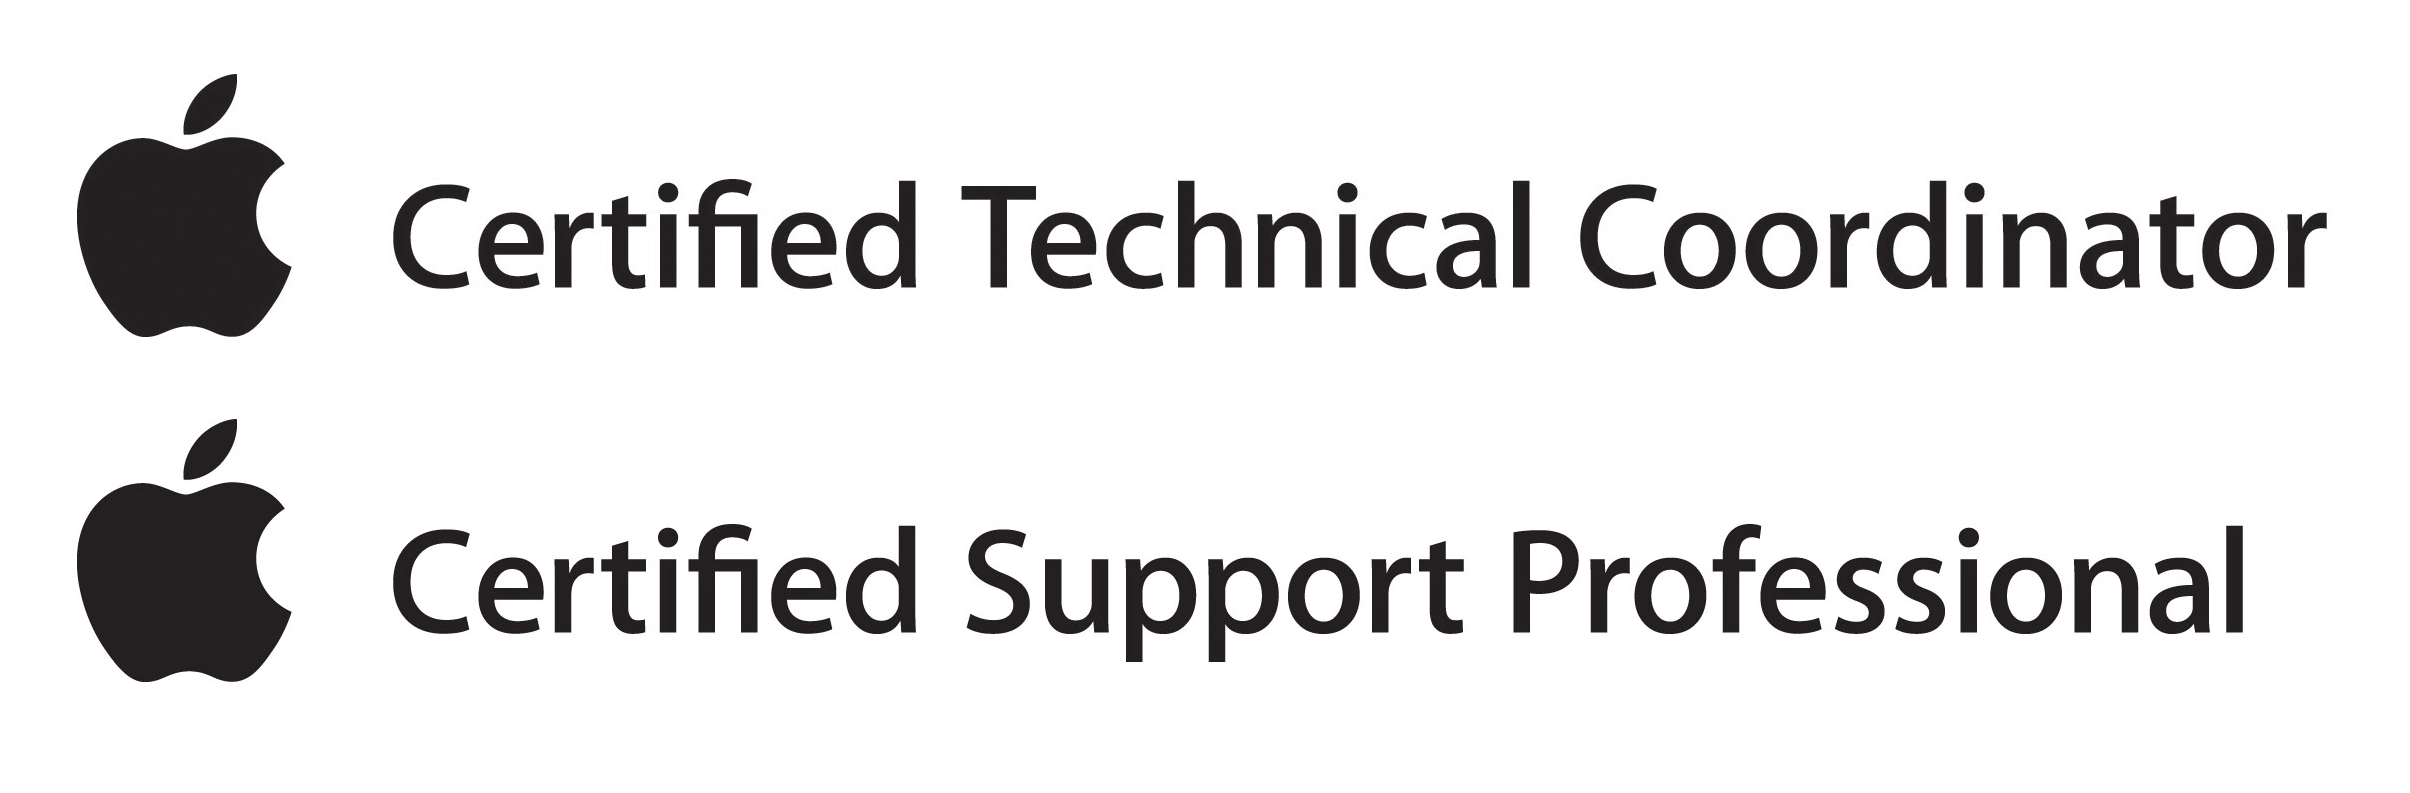 Apple_Certifications.jpg